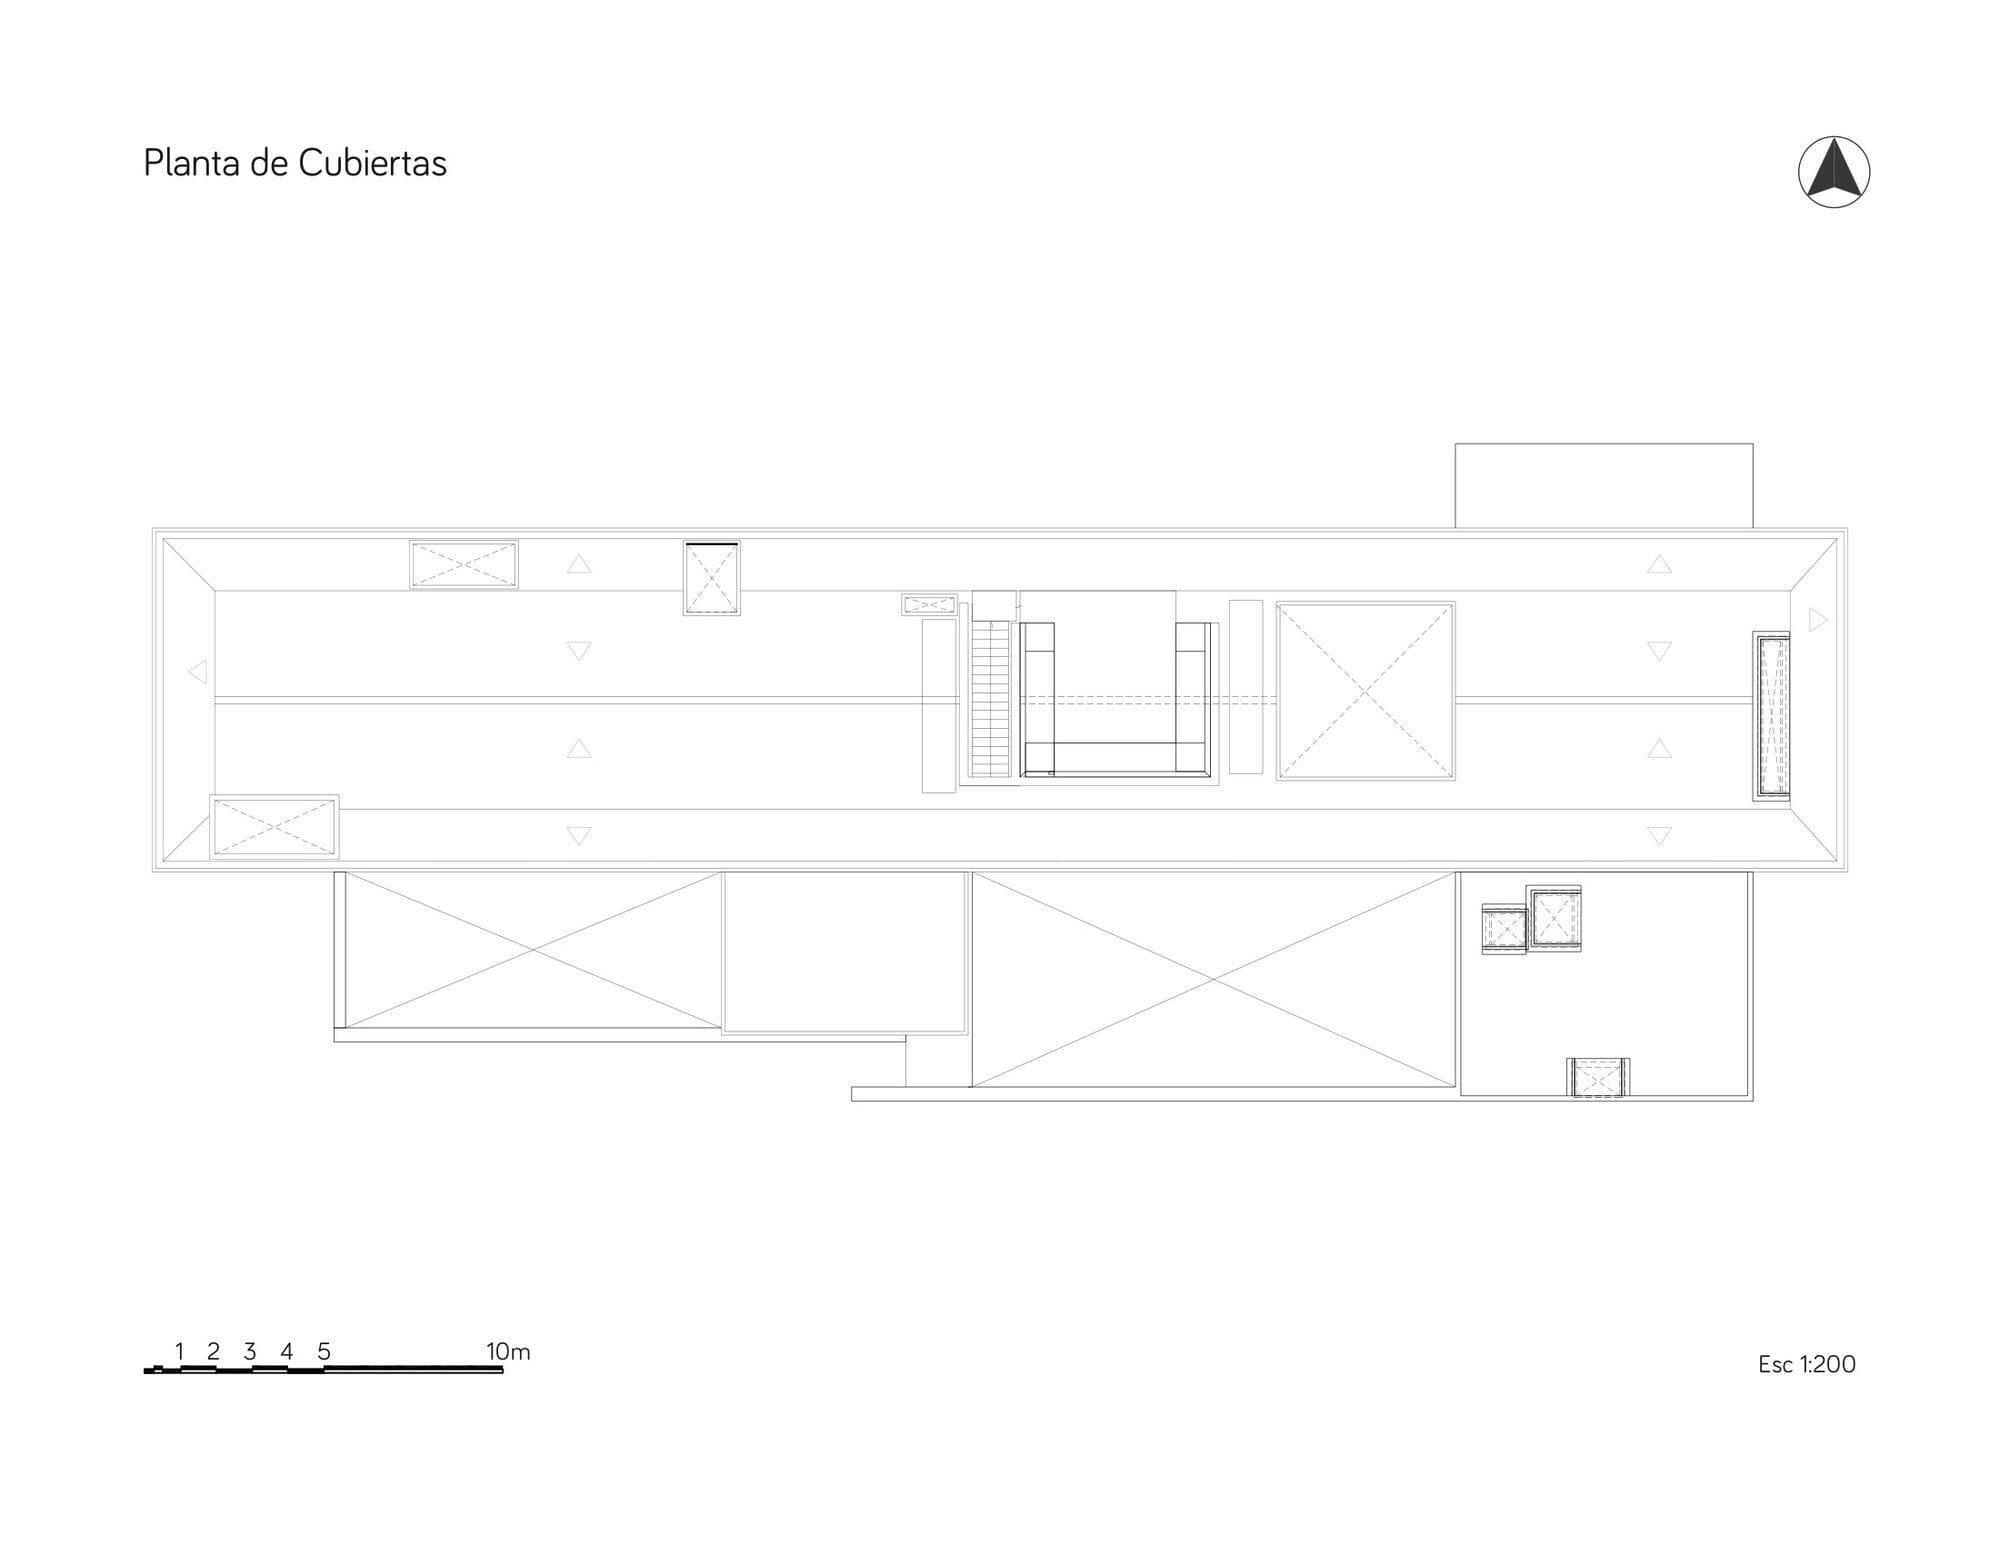 Вилла Casa 7A в Колумбии от Arquitectura en Estudio, HQ architecture, HQarch, HQ arch, high quality architecture